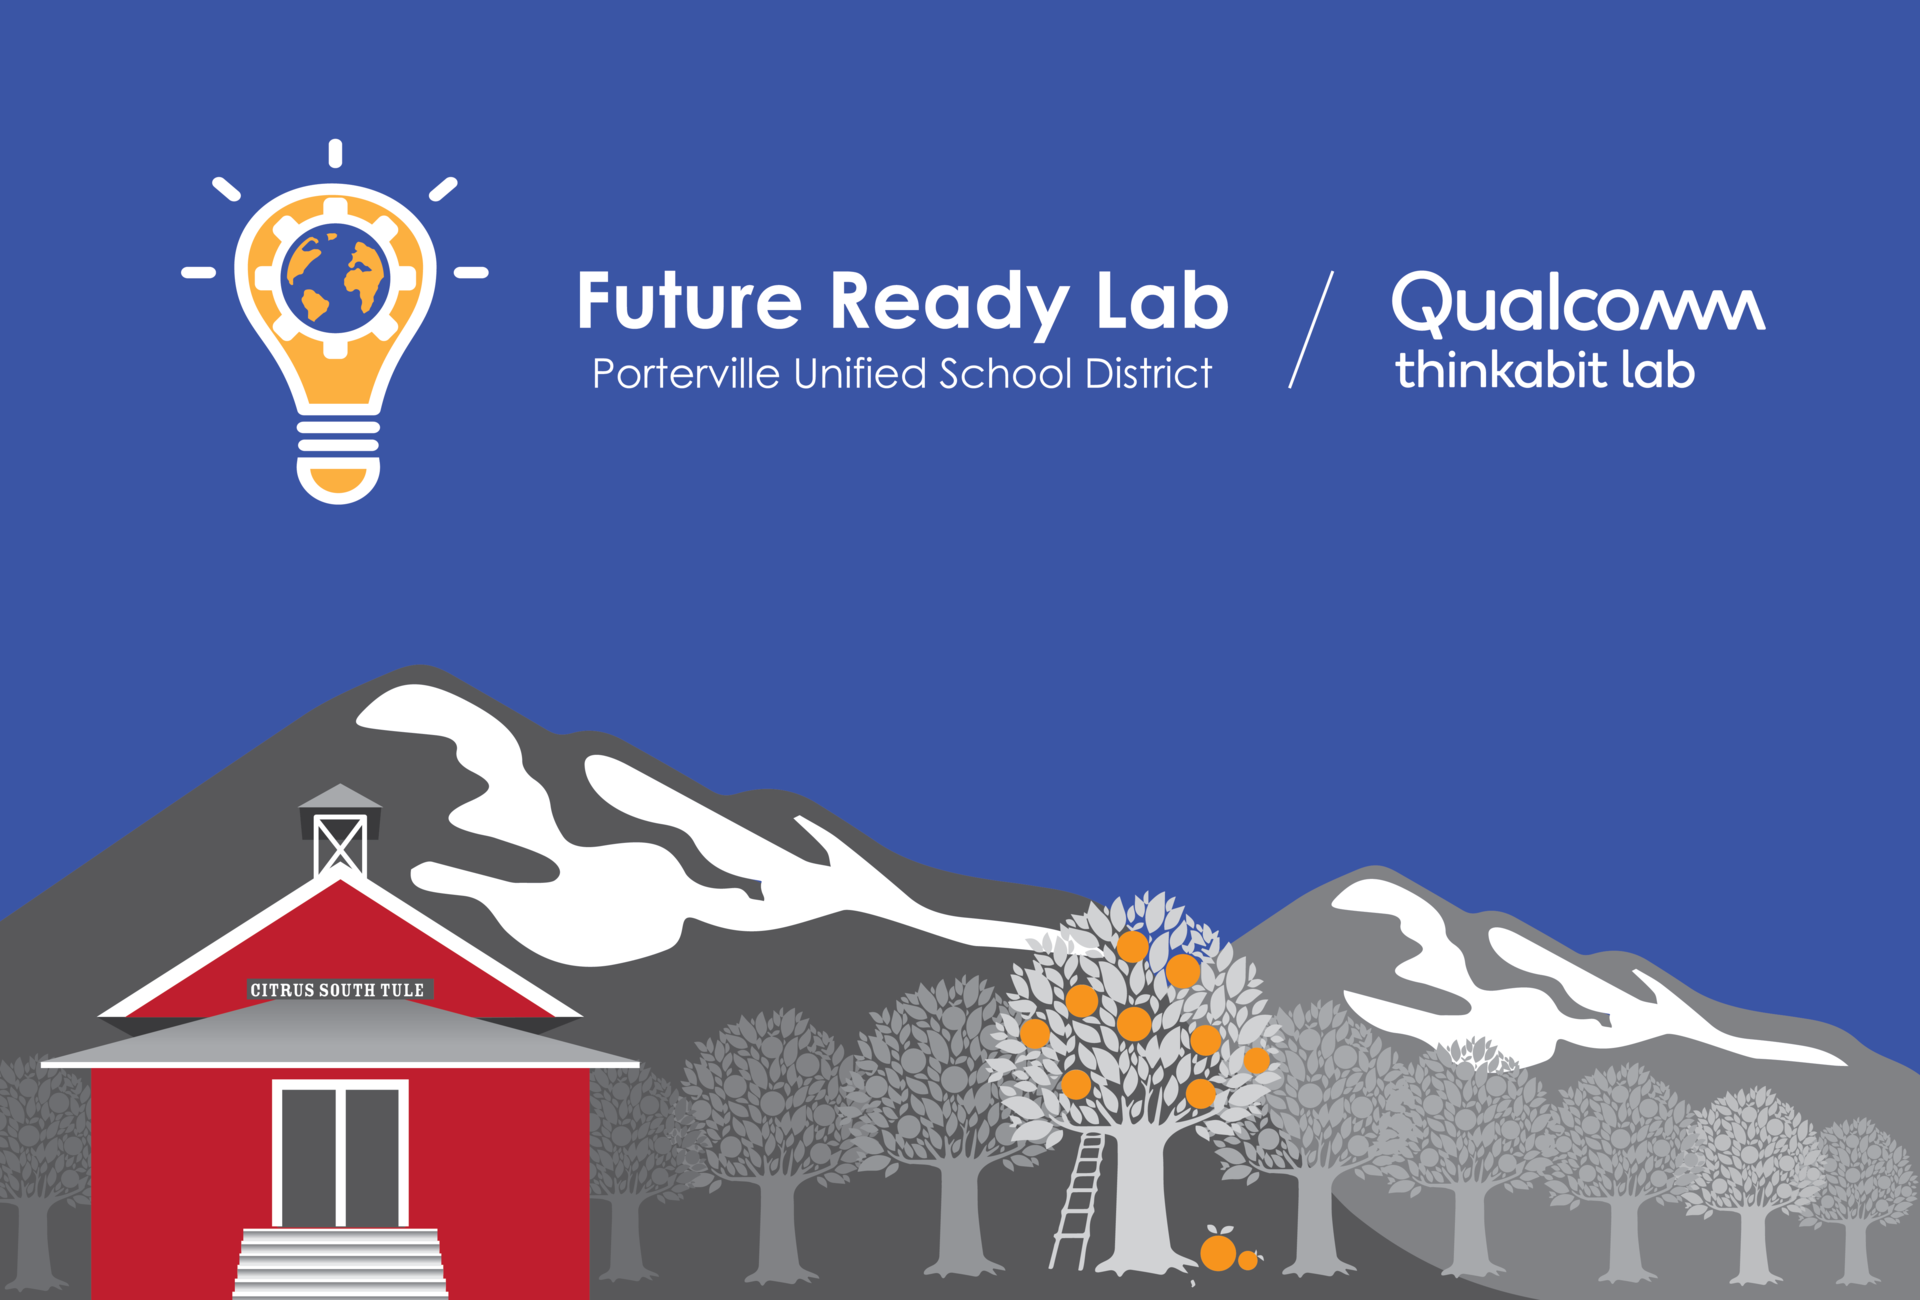 Future Ready Lab poster